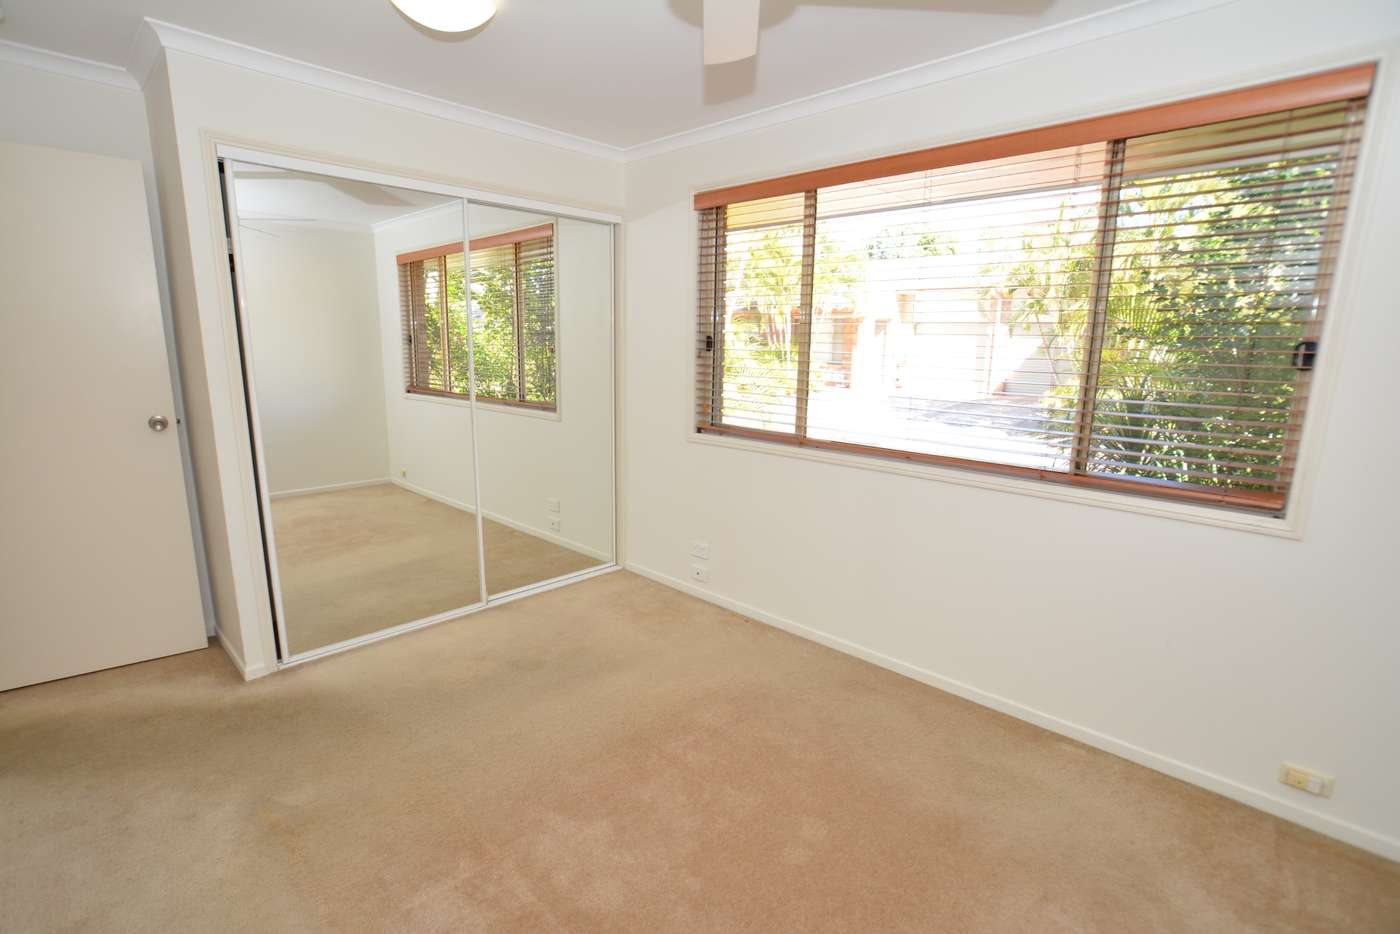 Fifth view of Homely villa listing, 14/18 Spano Street, Zillmere QLD 4034